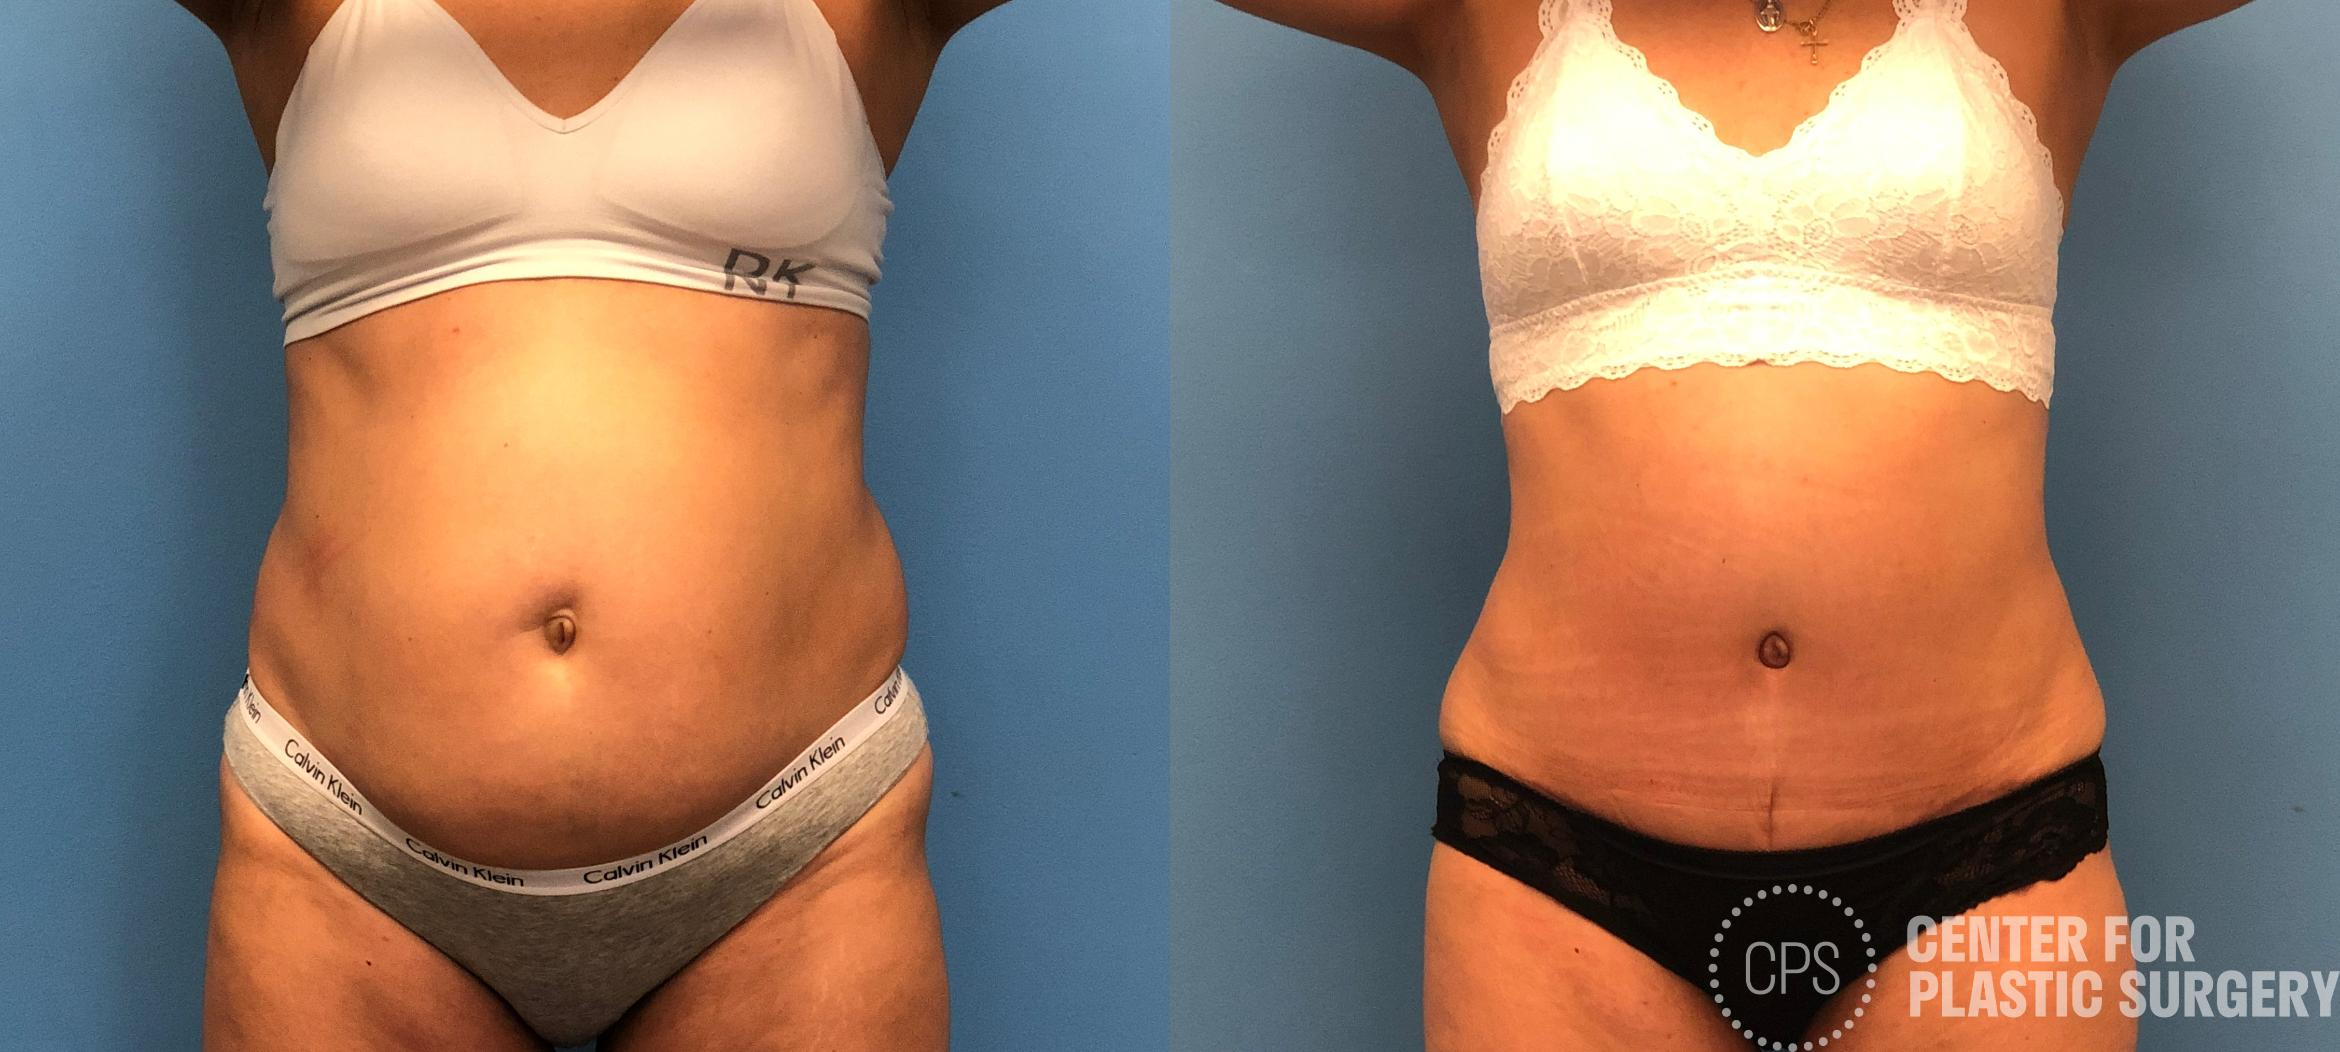 Tummy Tuck Case 153 Before & After Front | Annandale, VA & Chevy Chase, MD, Washington D.C. Metropolitan Area | Center for Plastic Surgery